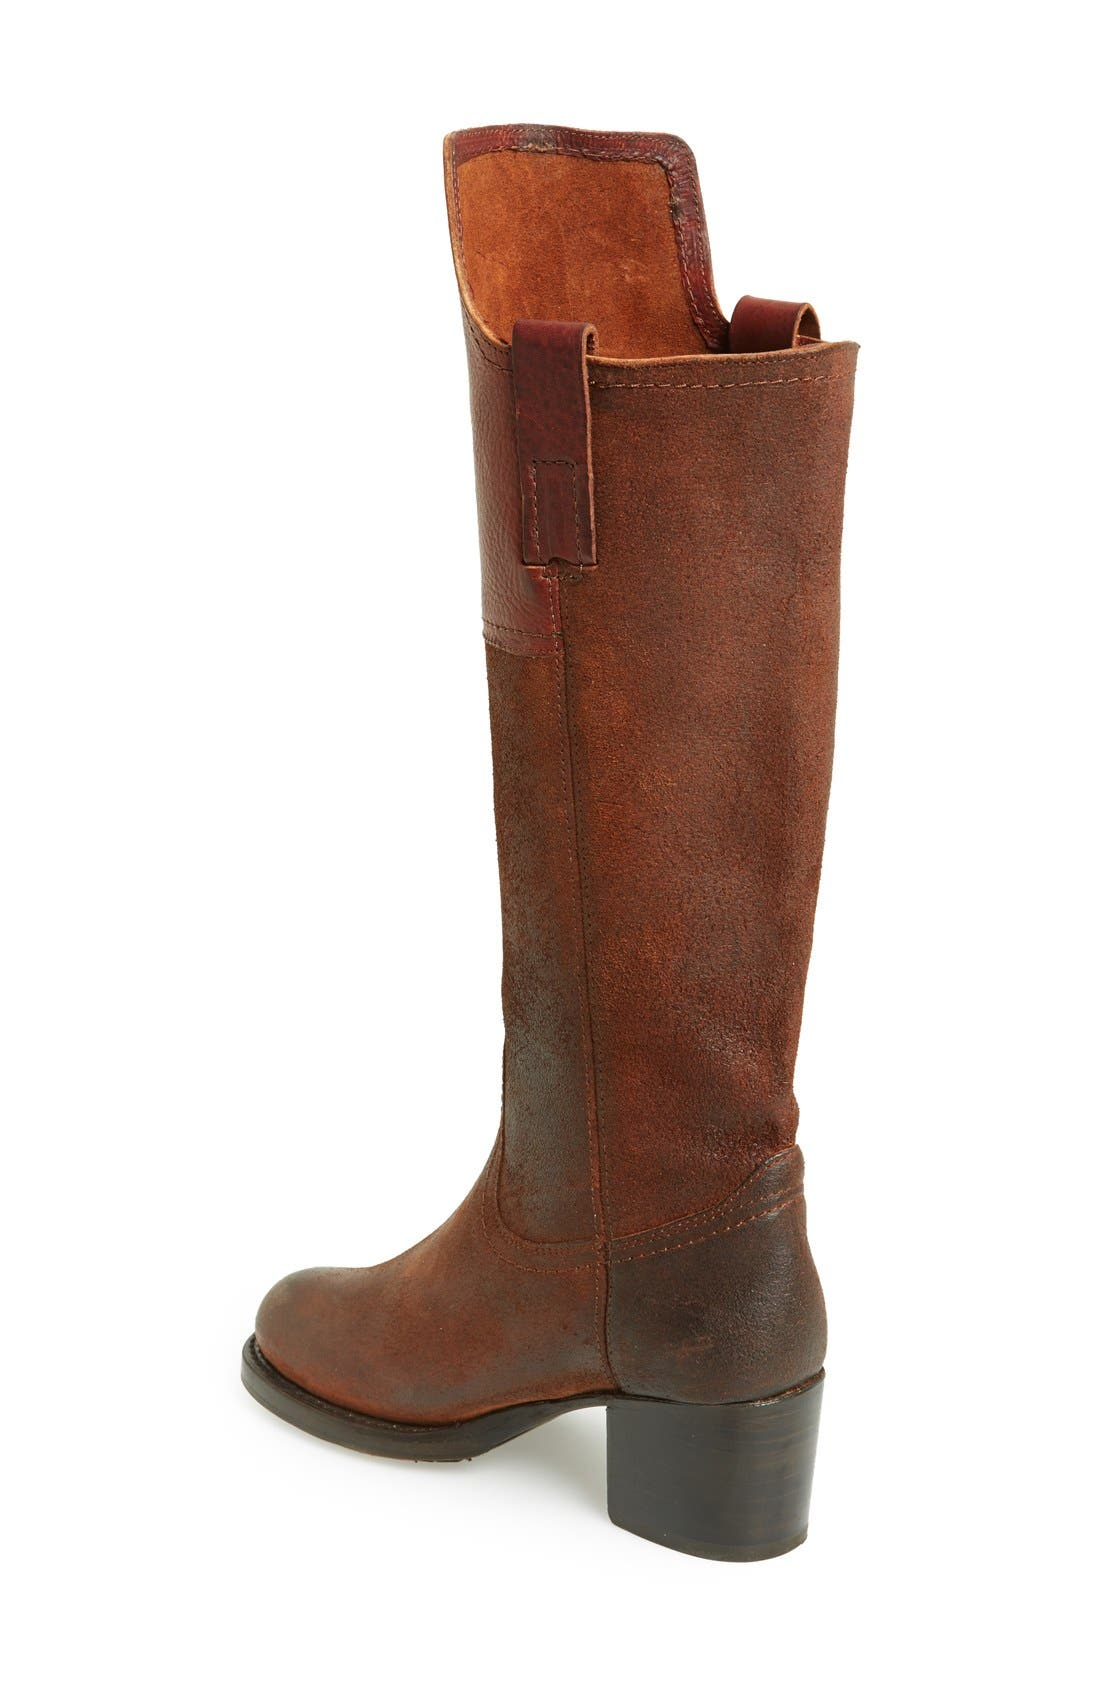 Alternate Image 2  - Frye 'Autumn Shield' Tall Suede & Leather Boot (Women)